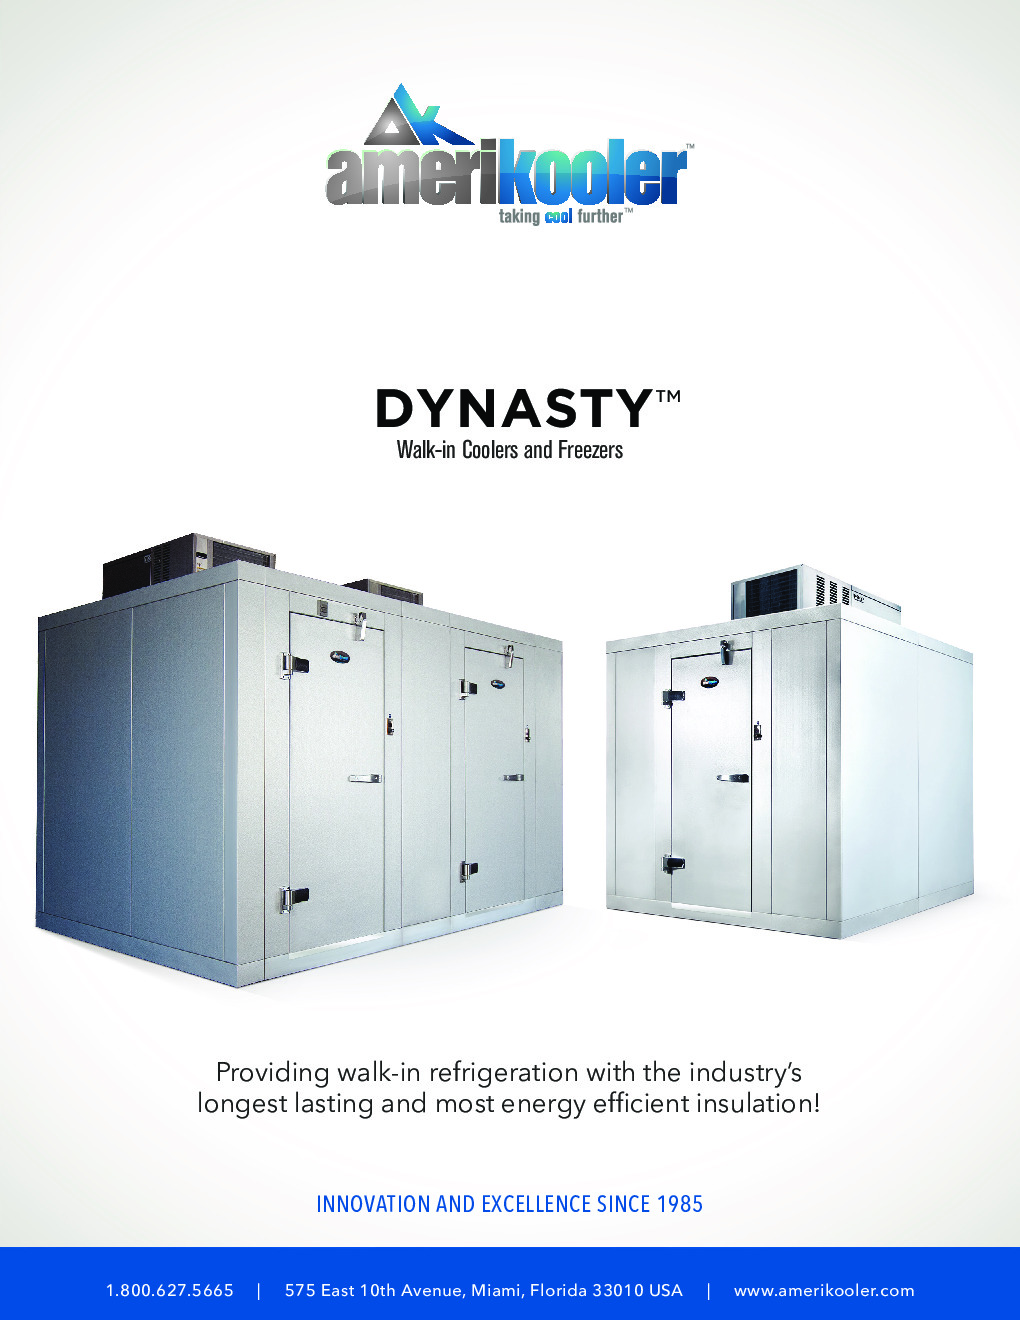 AmeriKooler DW091777N-6/11-RM 9' X 17' Walk-In Cooler, 11' L Cooler without Floor and 6' L Freezer, Remote